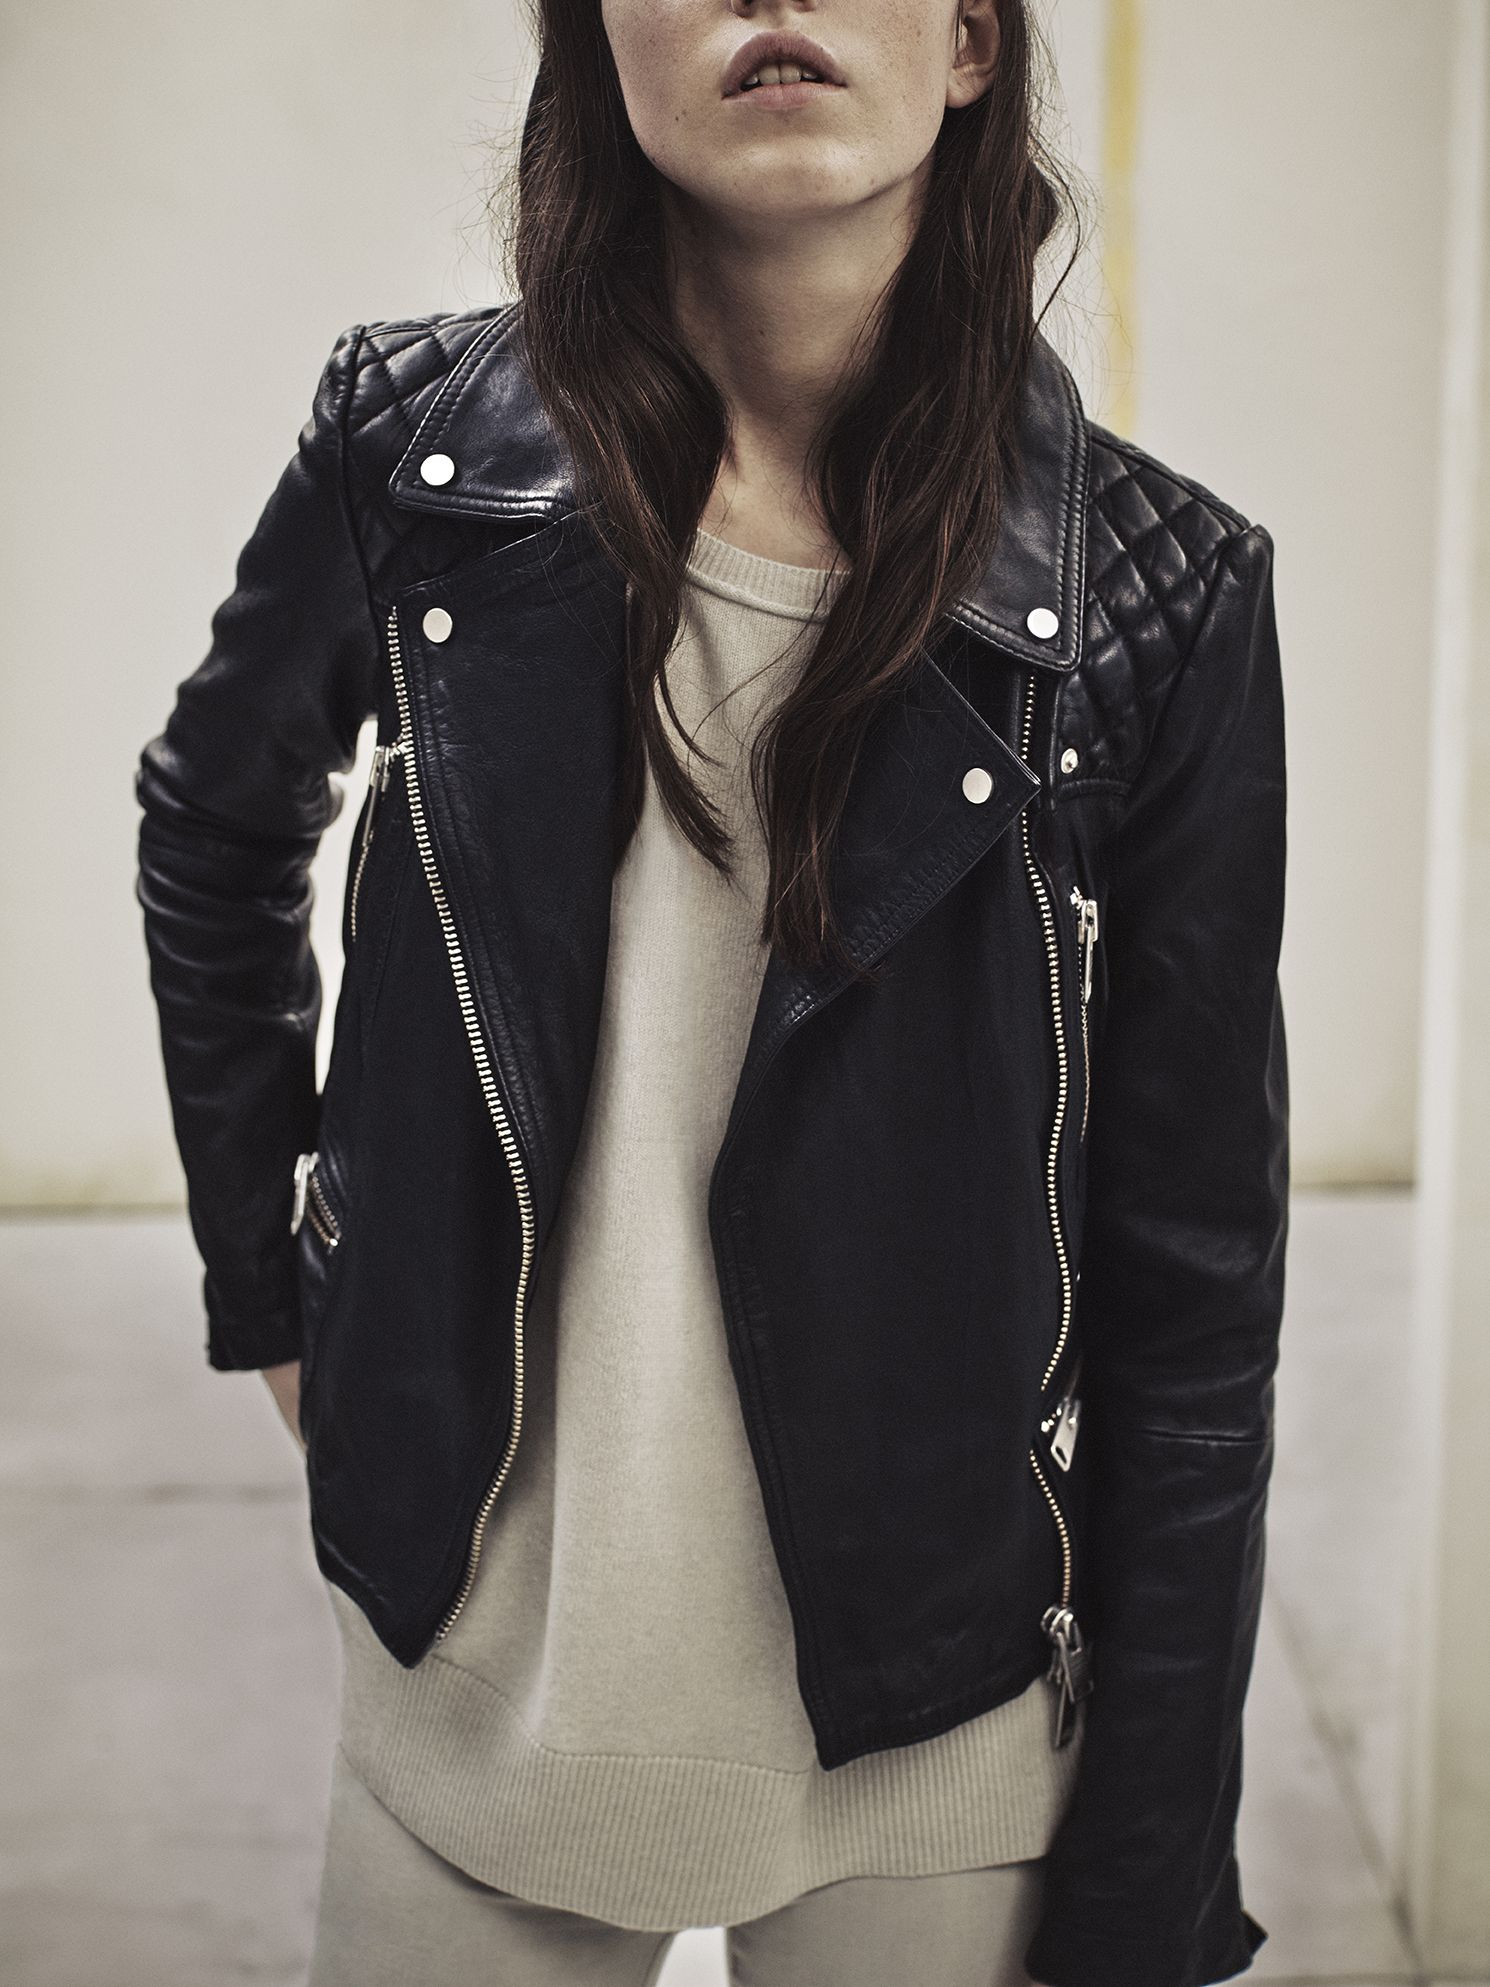 Allsaints New Arrivals The Bleeker Leather Biker Char Jumper And Grace Jeans Leather Leather Jackets Women All Saints Leather Jacket Leather Jacket Style [ 1987 x 1490 Pixel ]